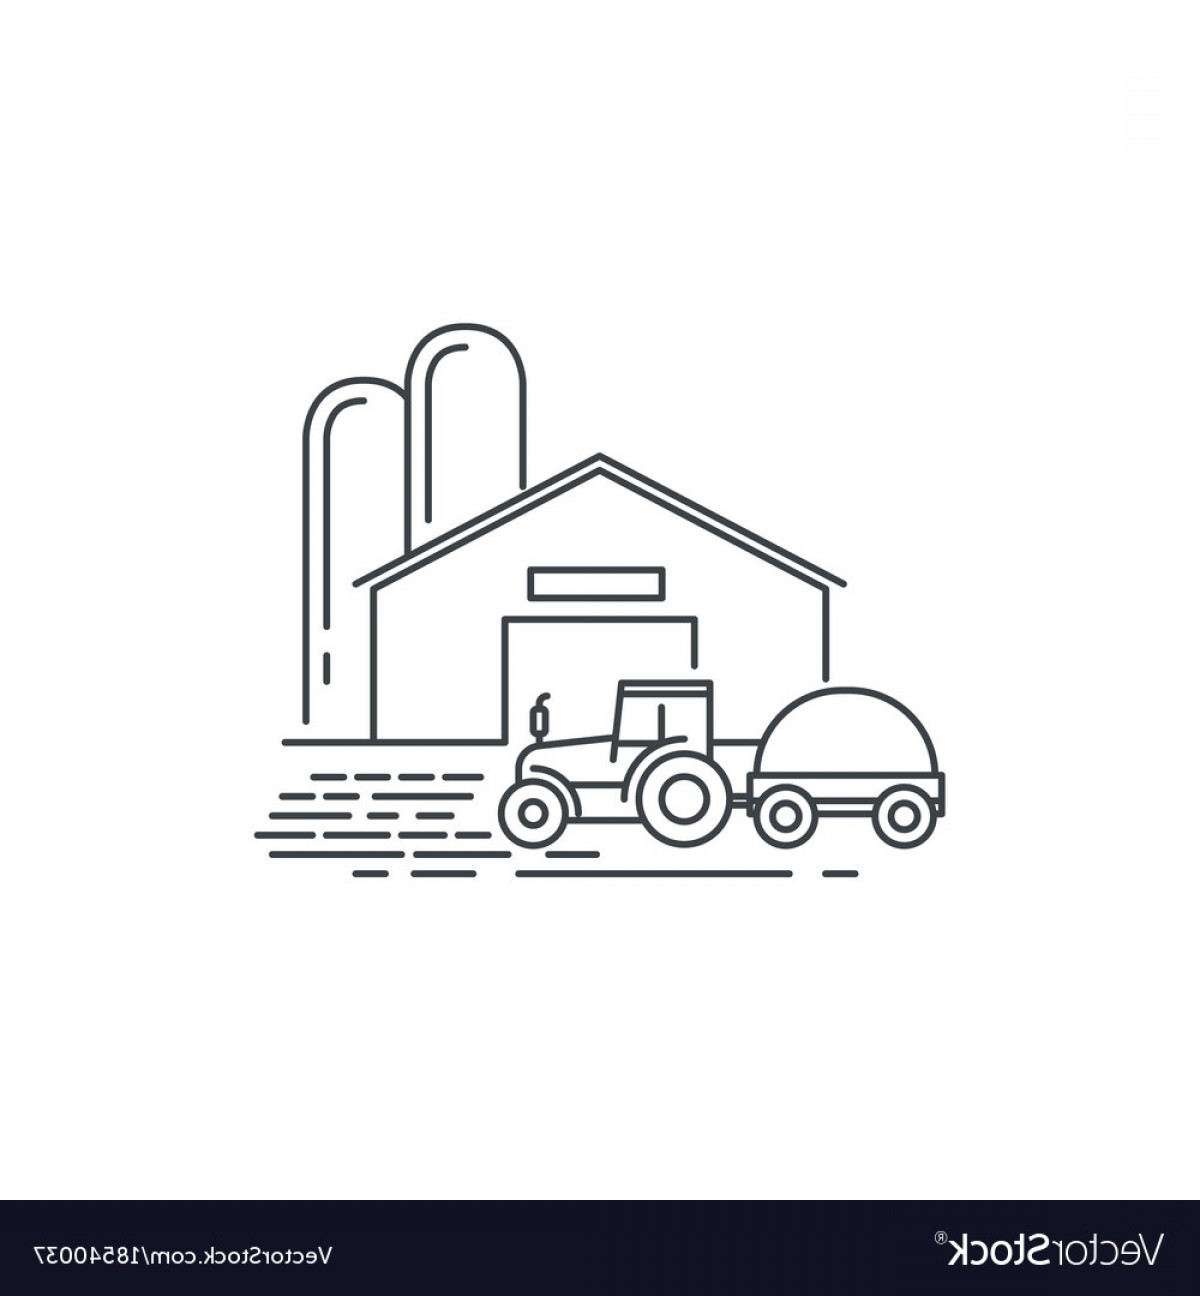 Barn Outline Vector: Farm Barn And Tractor Line Icon Outline Vector